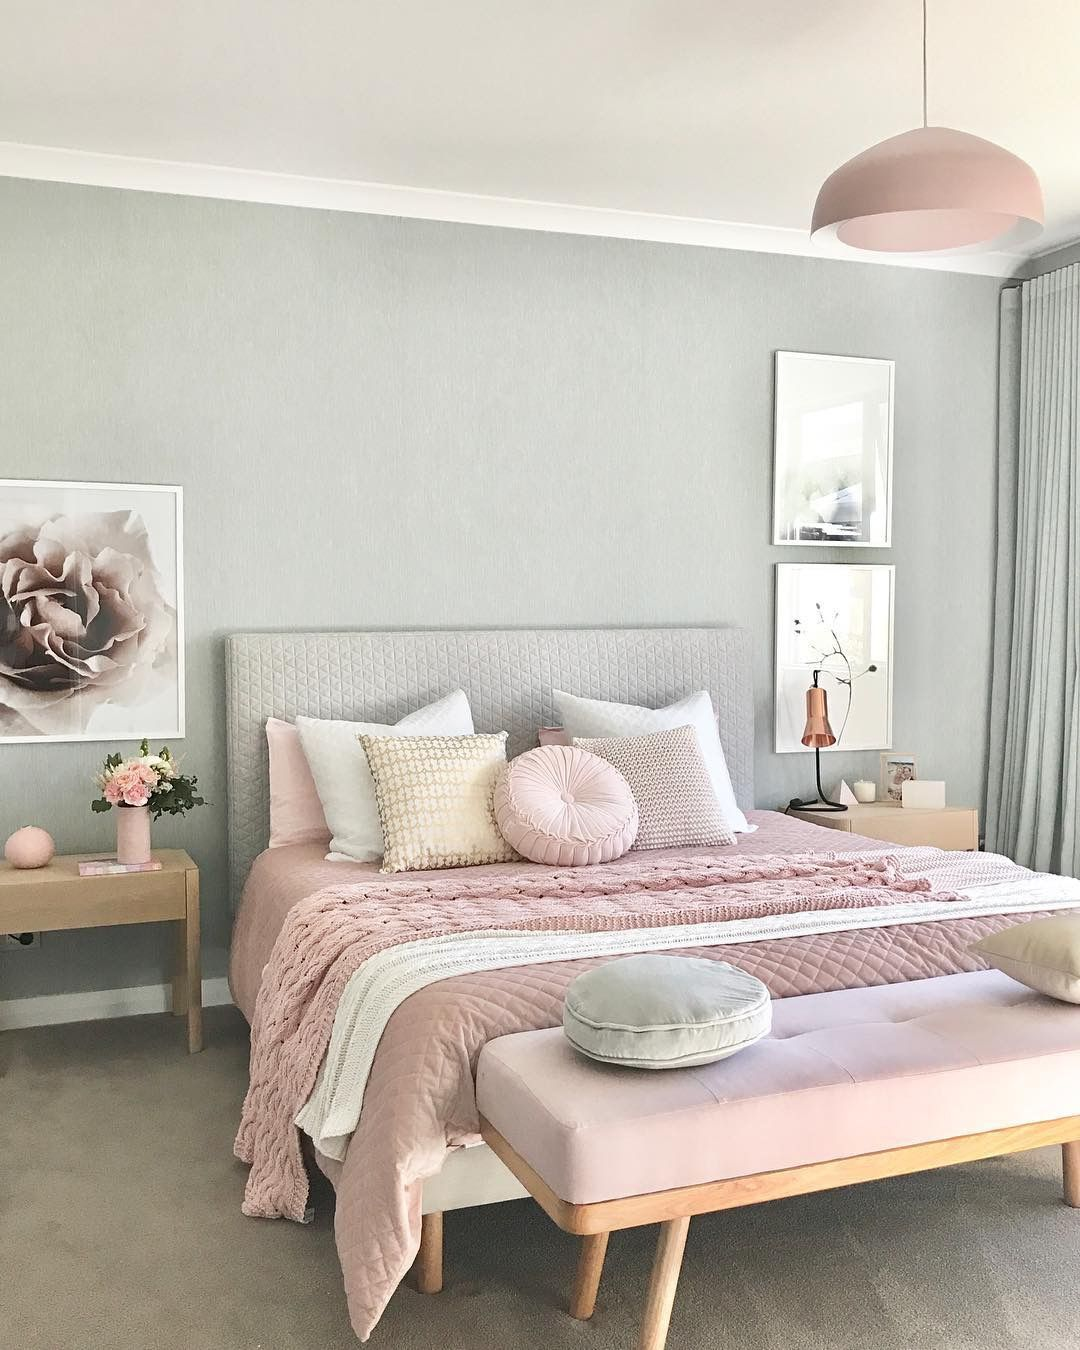 pastel bedroom colors pastel colors bedroom ideas www indiepedia org 12799